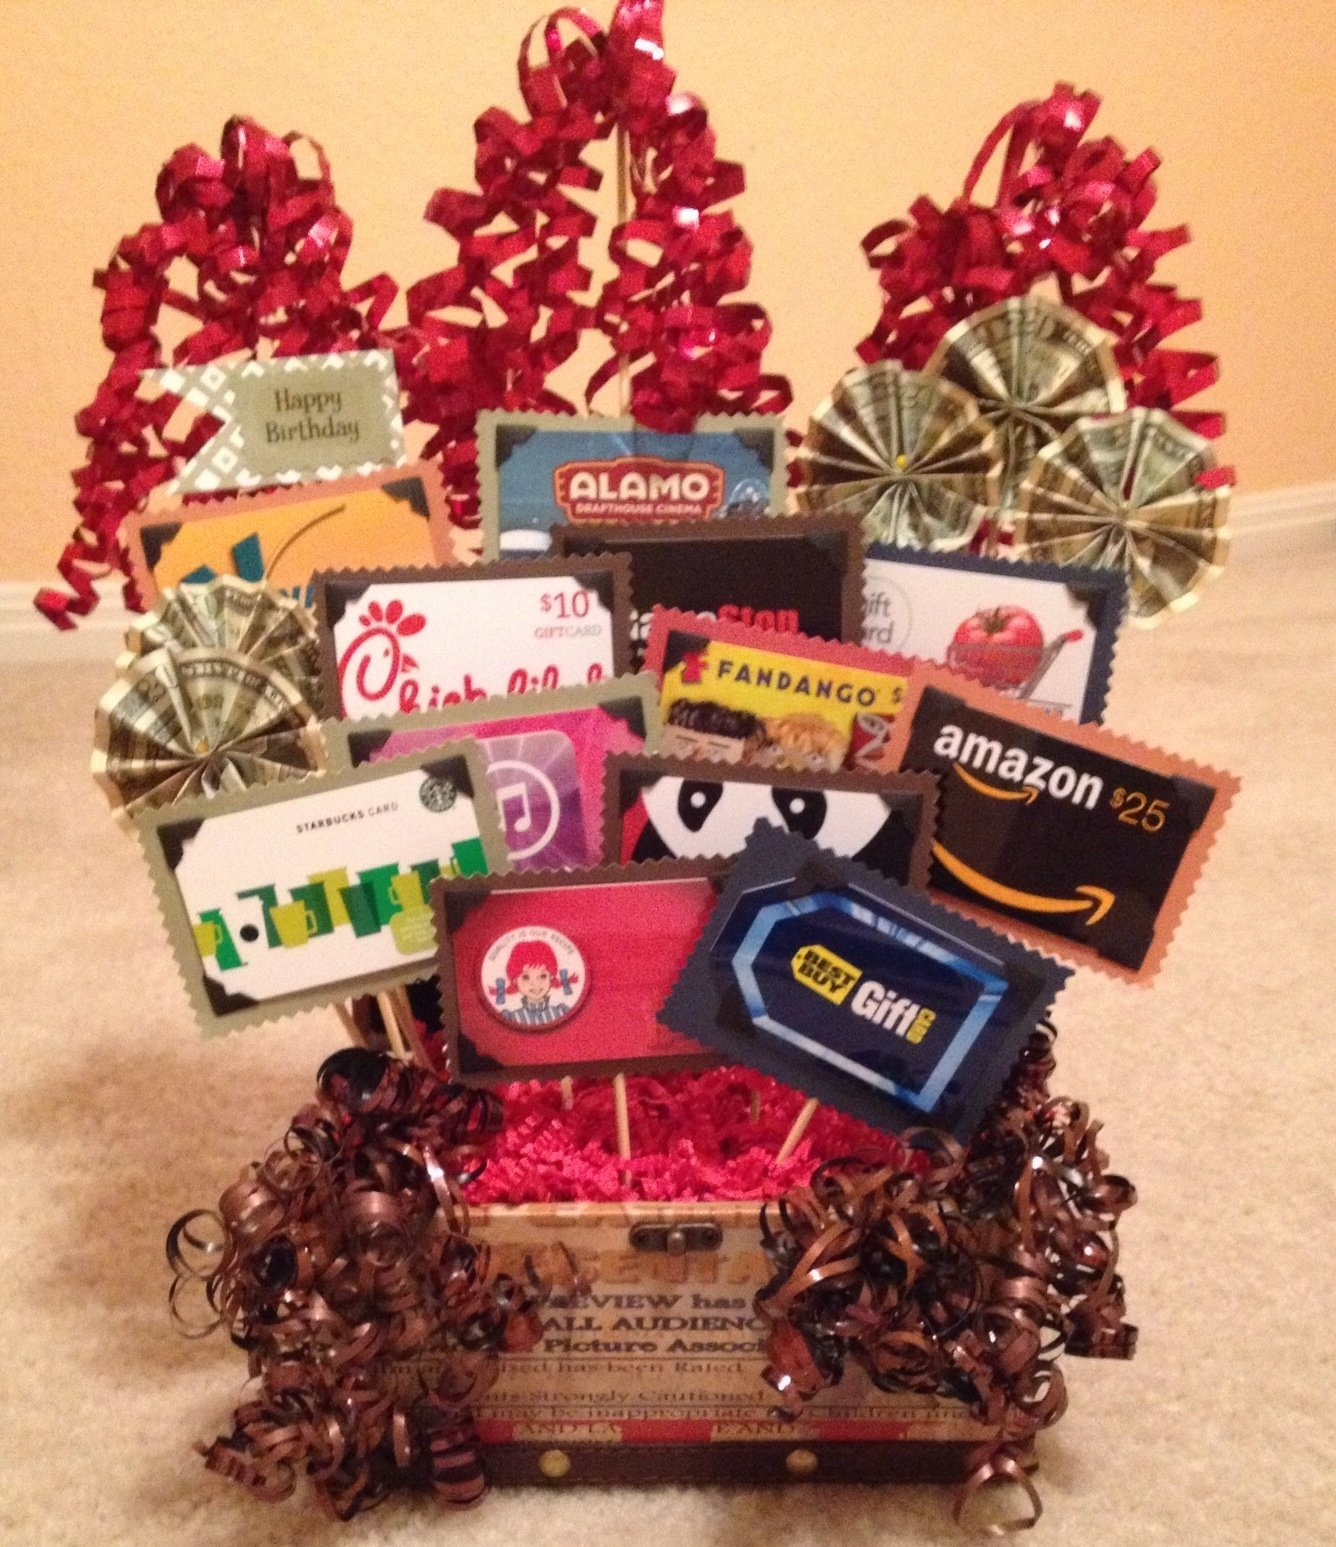 10 Stunning Gift Card Ideas For Couples gifts design ideas most popular best amazing certifacte gift card 1 2021